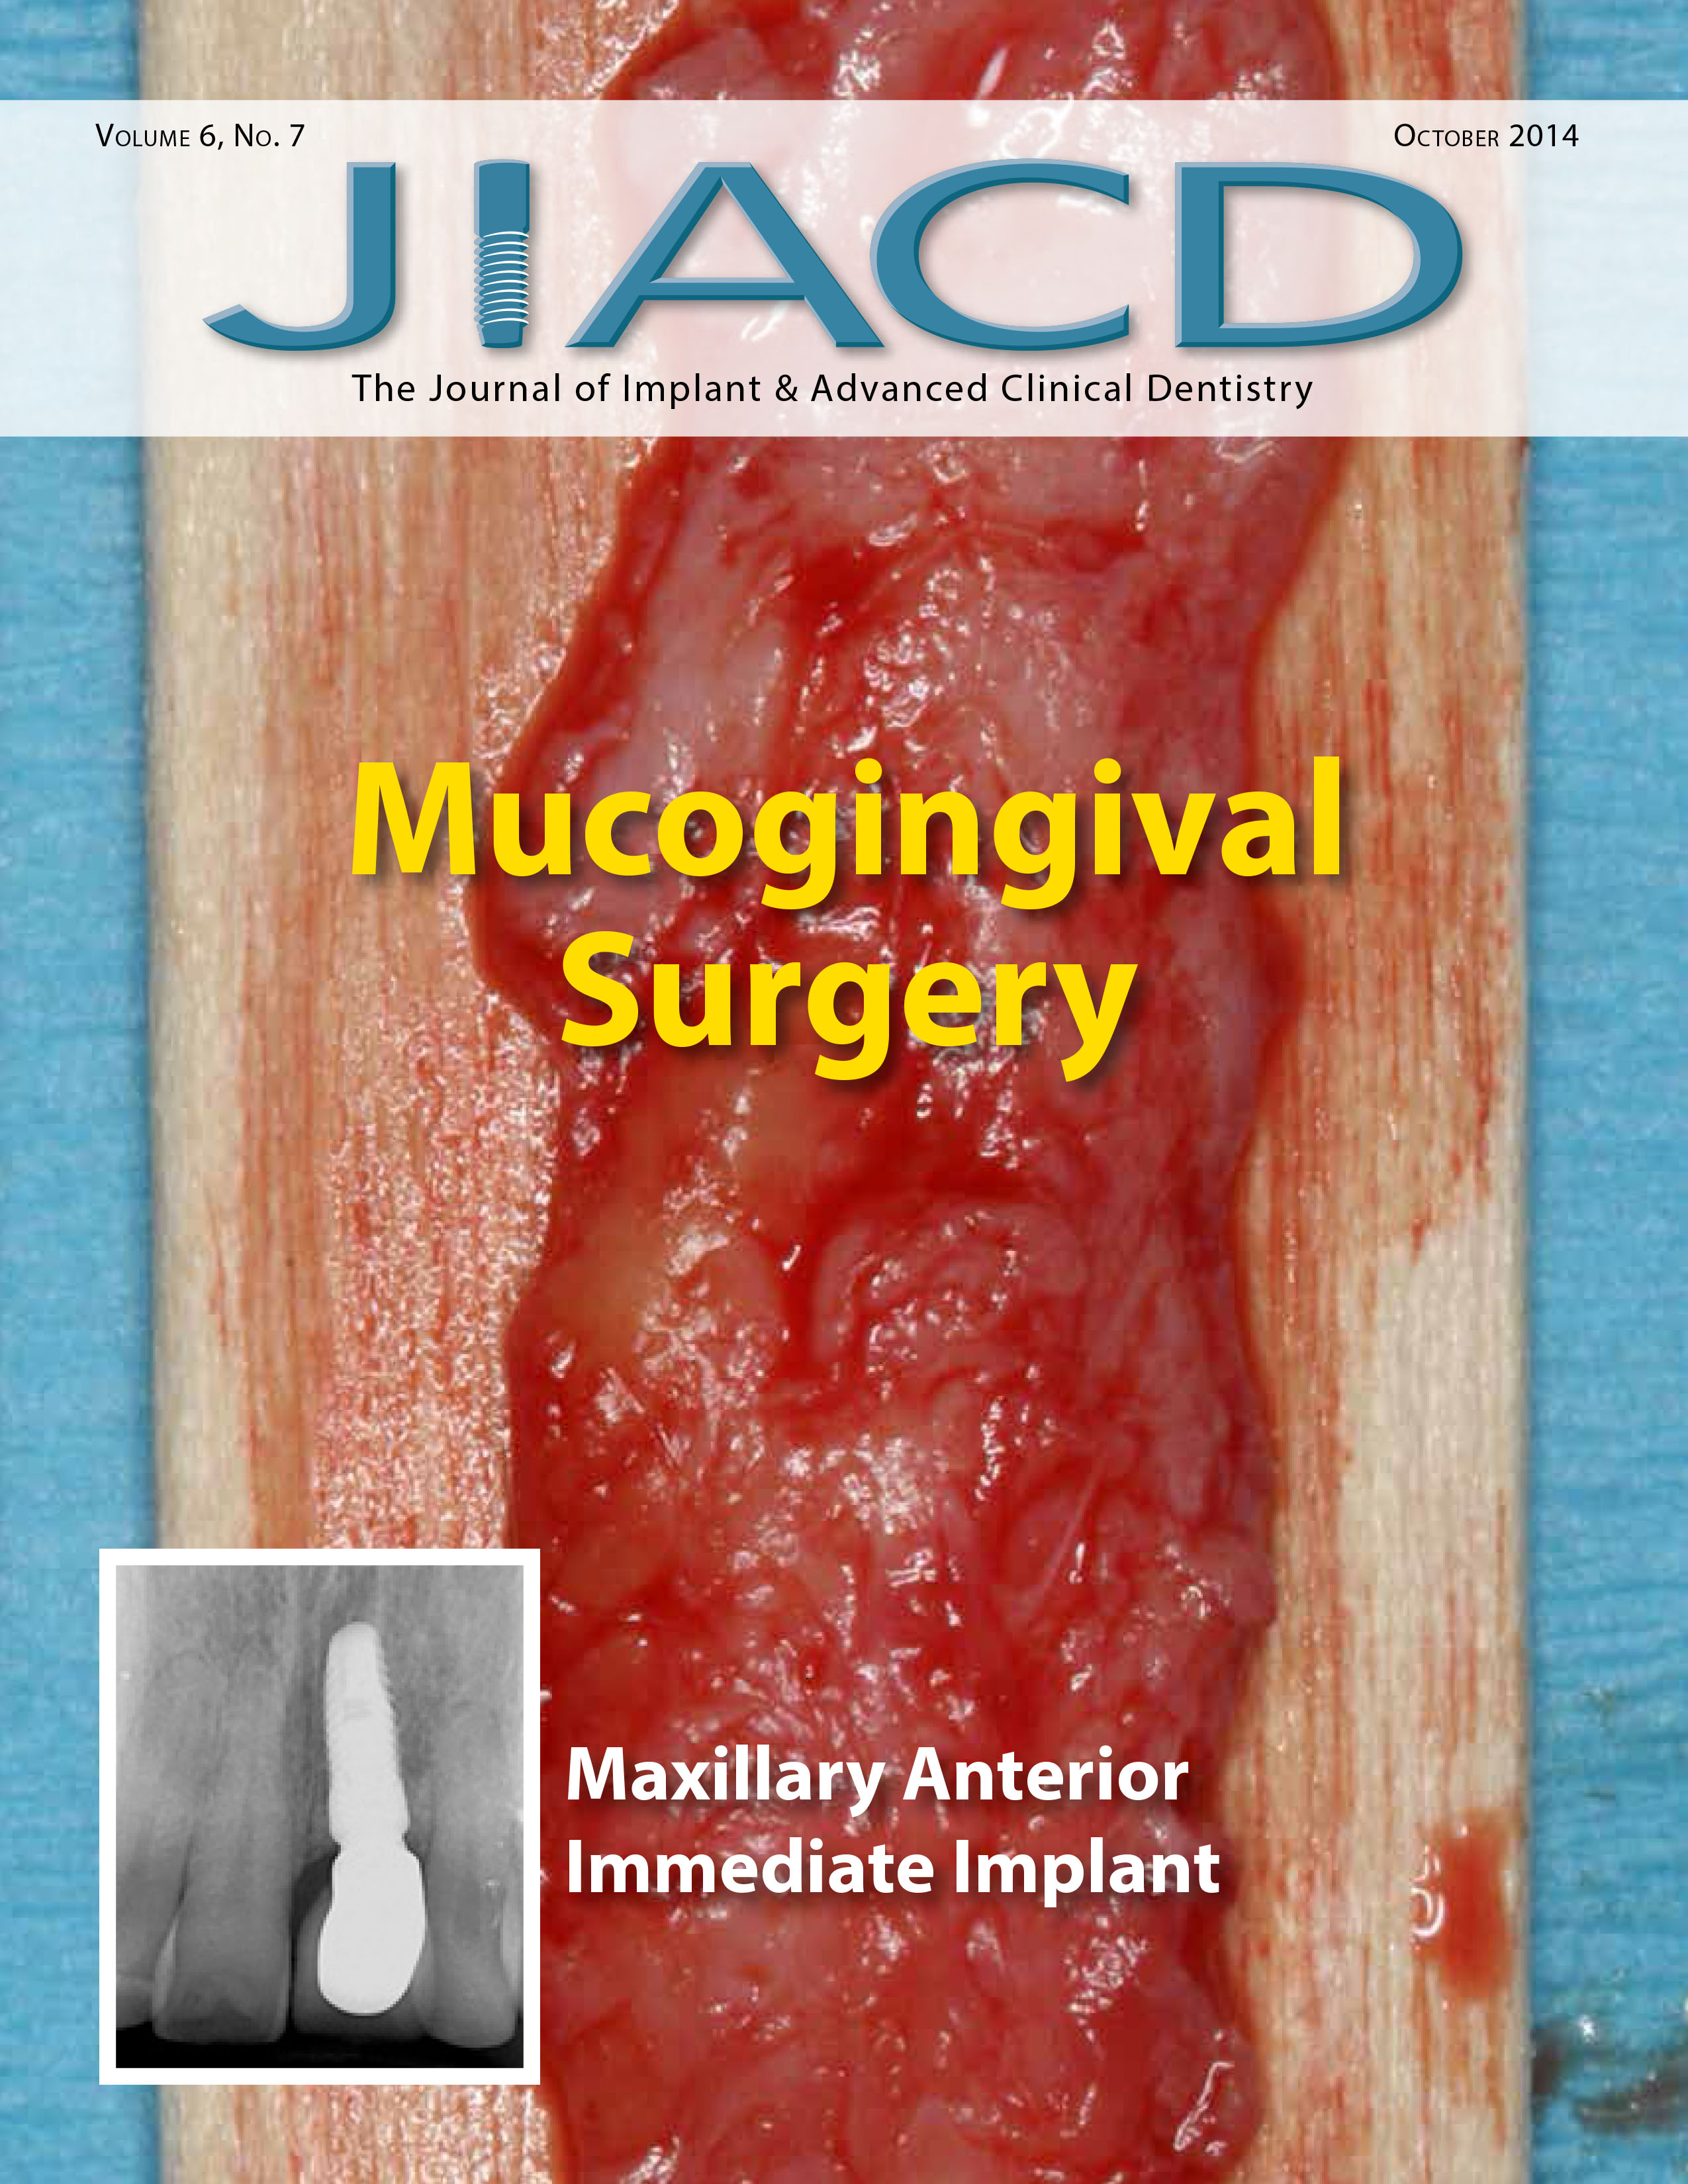 Mucogingival Surgery – Maxillary Anterior Immediate Implant